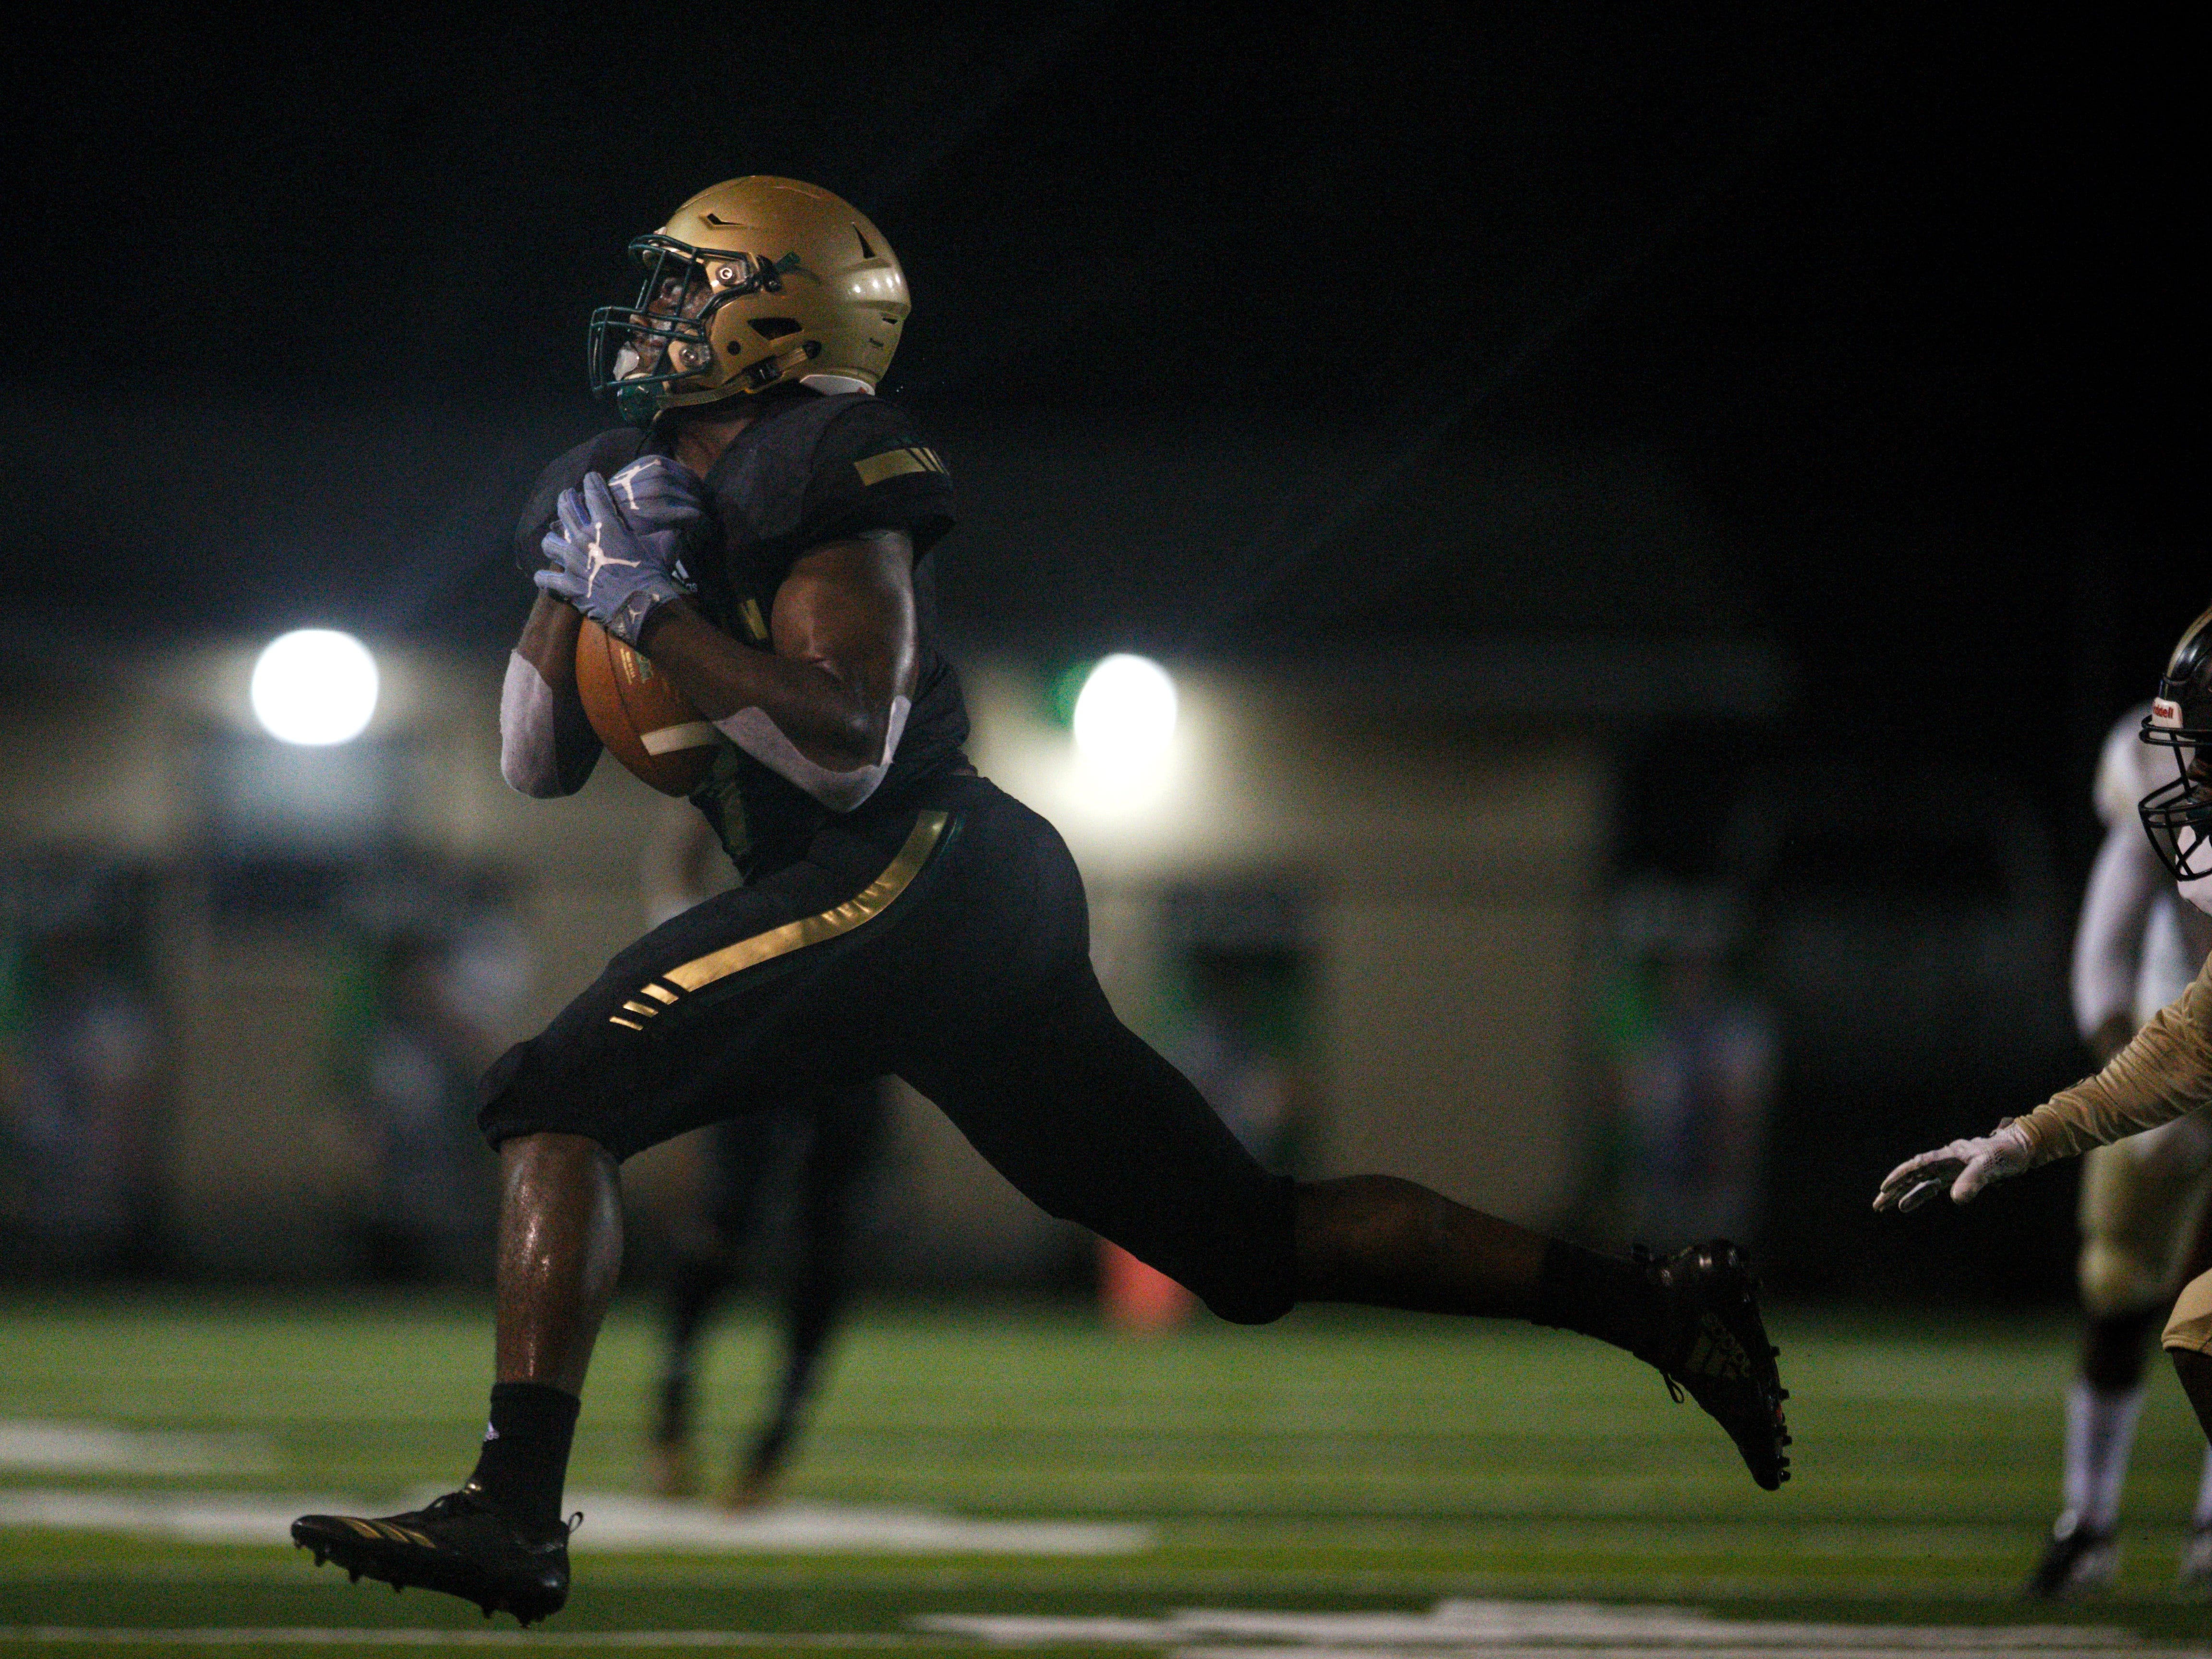 Lincoln's Kamari Morales hauls in a catch on the run as Lincoln beat Oakleaf 38-31 in three overtime periods in a  Region 1-7A quarterfinal Thursday night at Gene Cox Stadium.